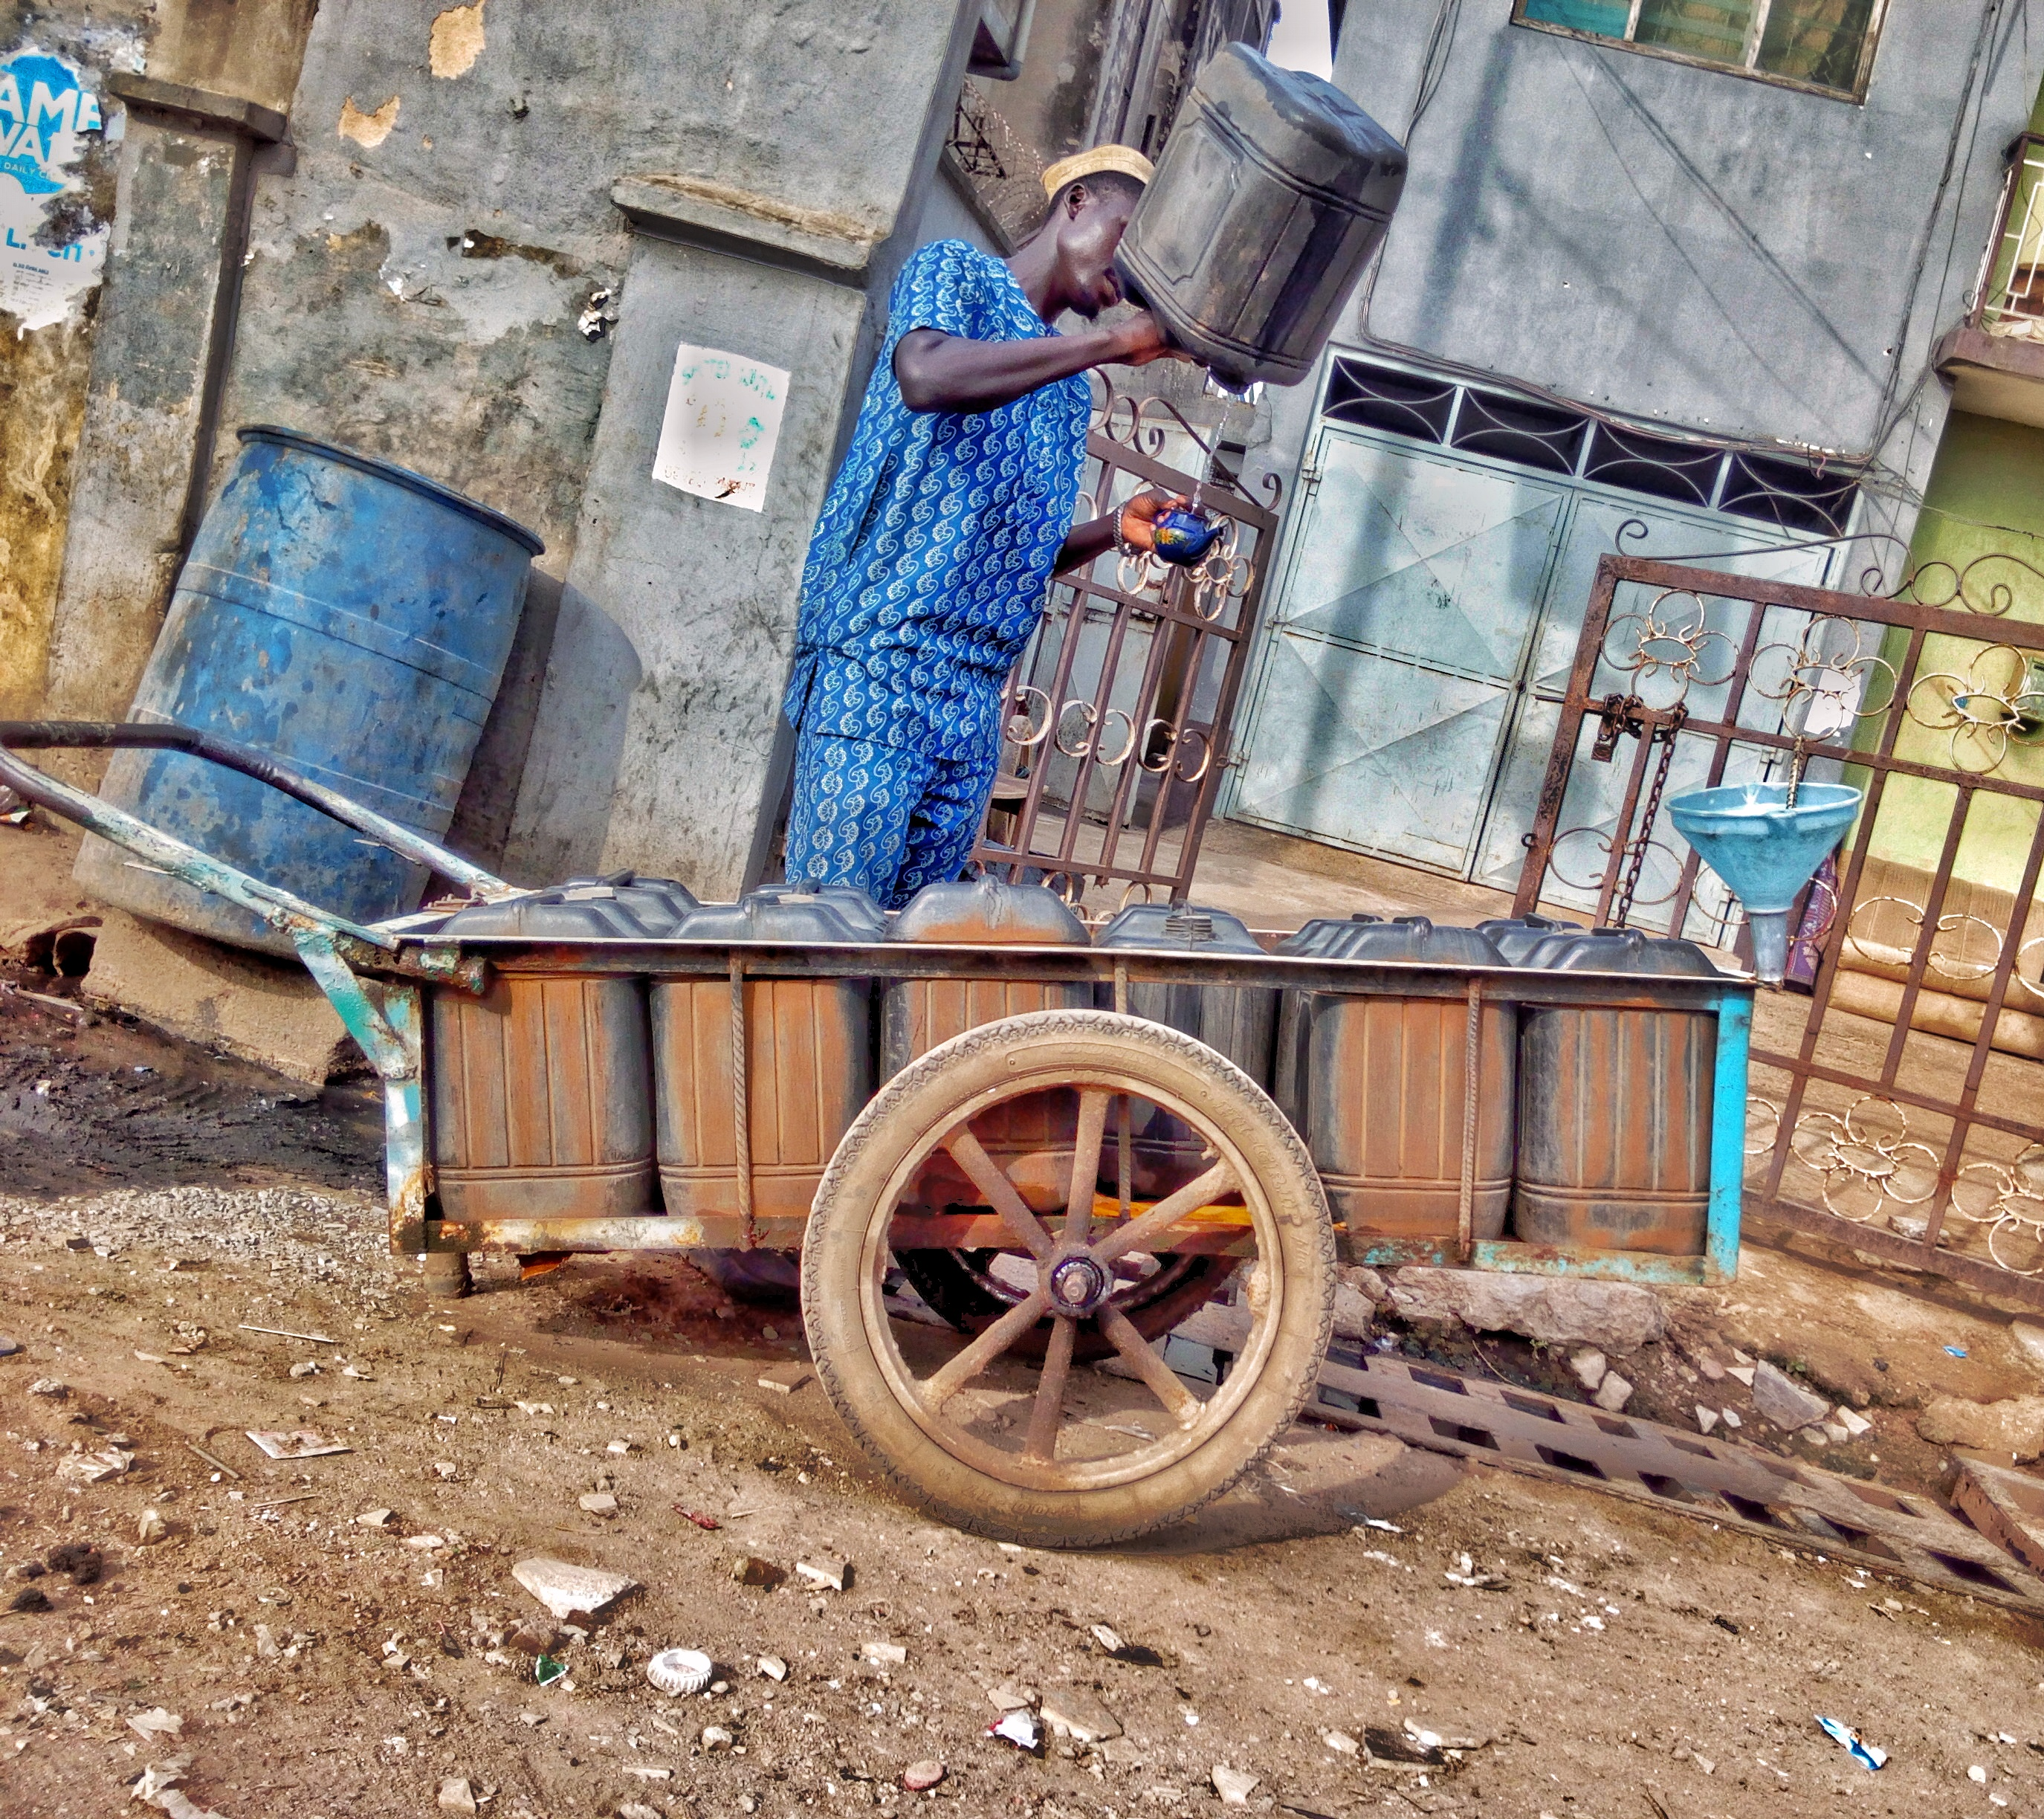 Caption: water vendor, Credit: wikimedia commons